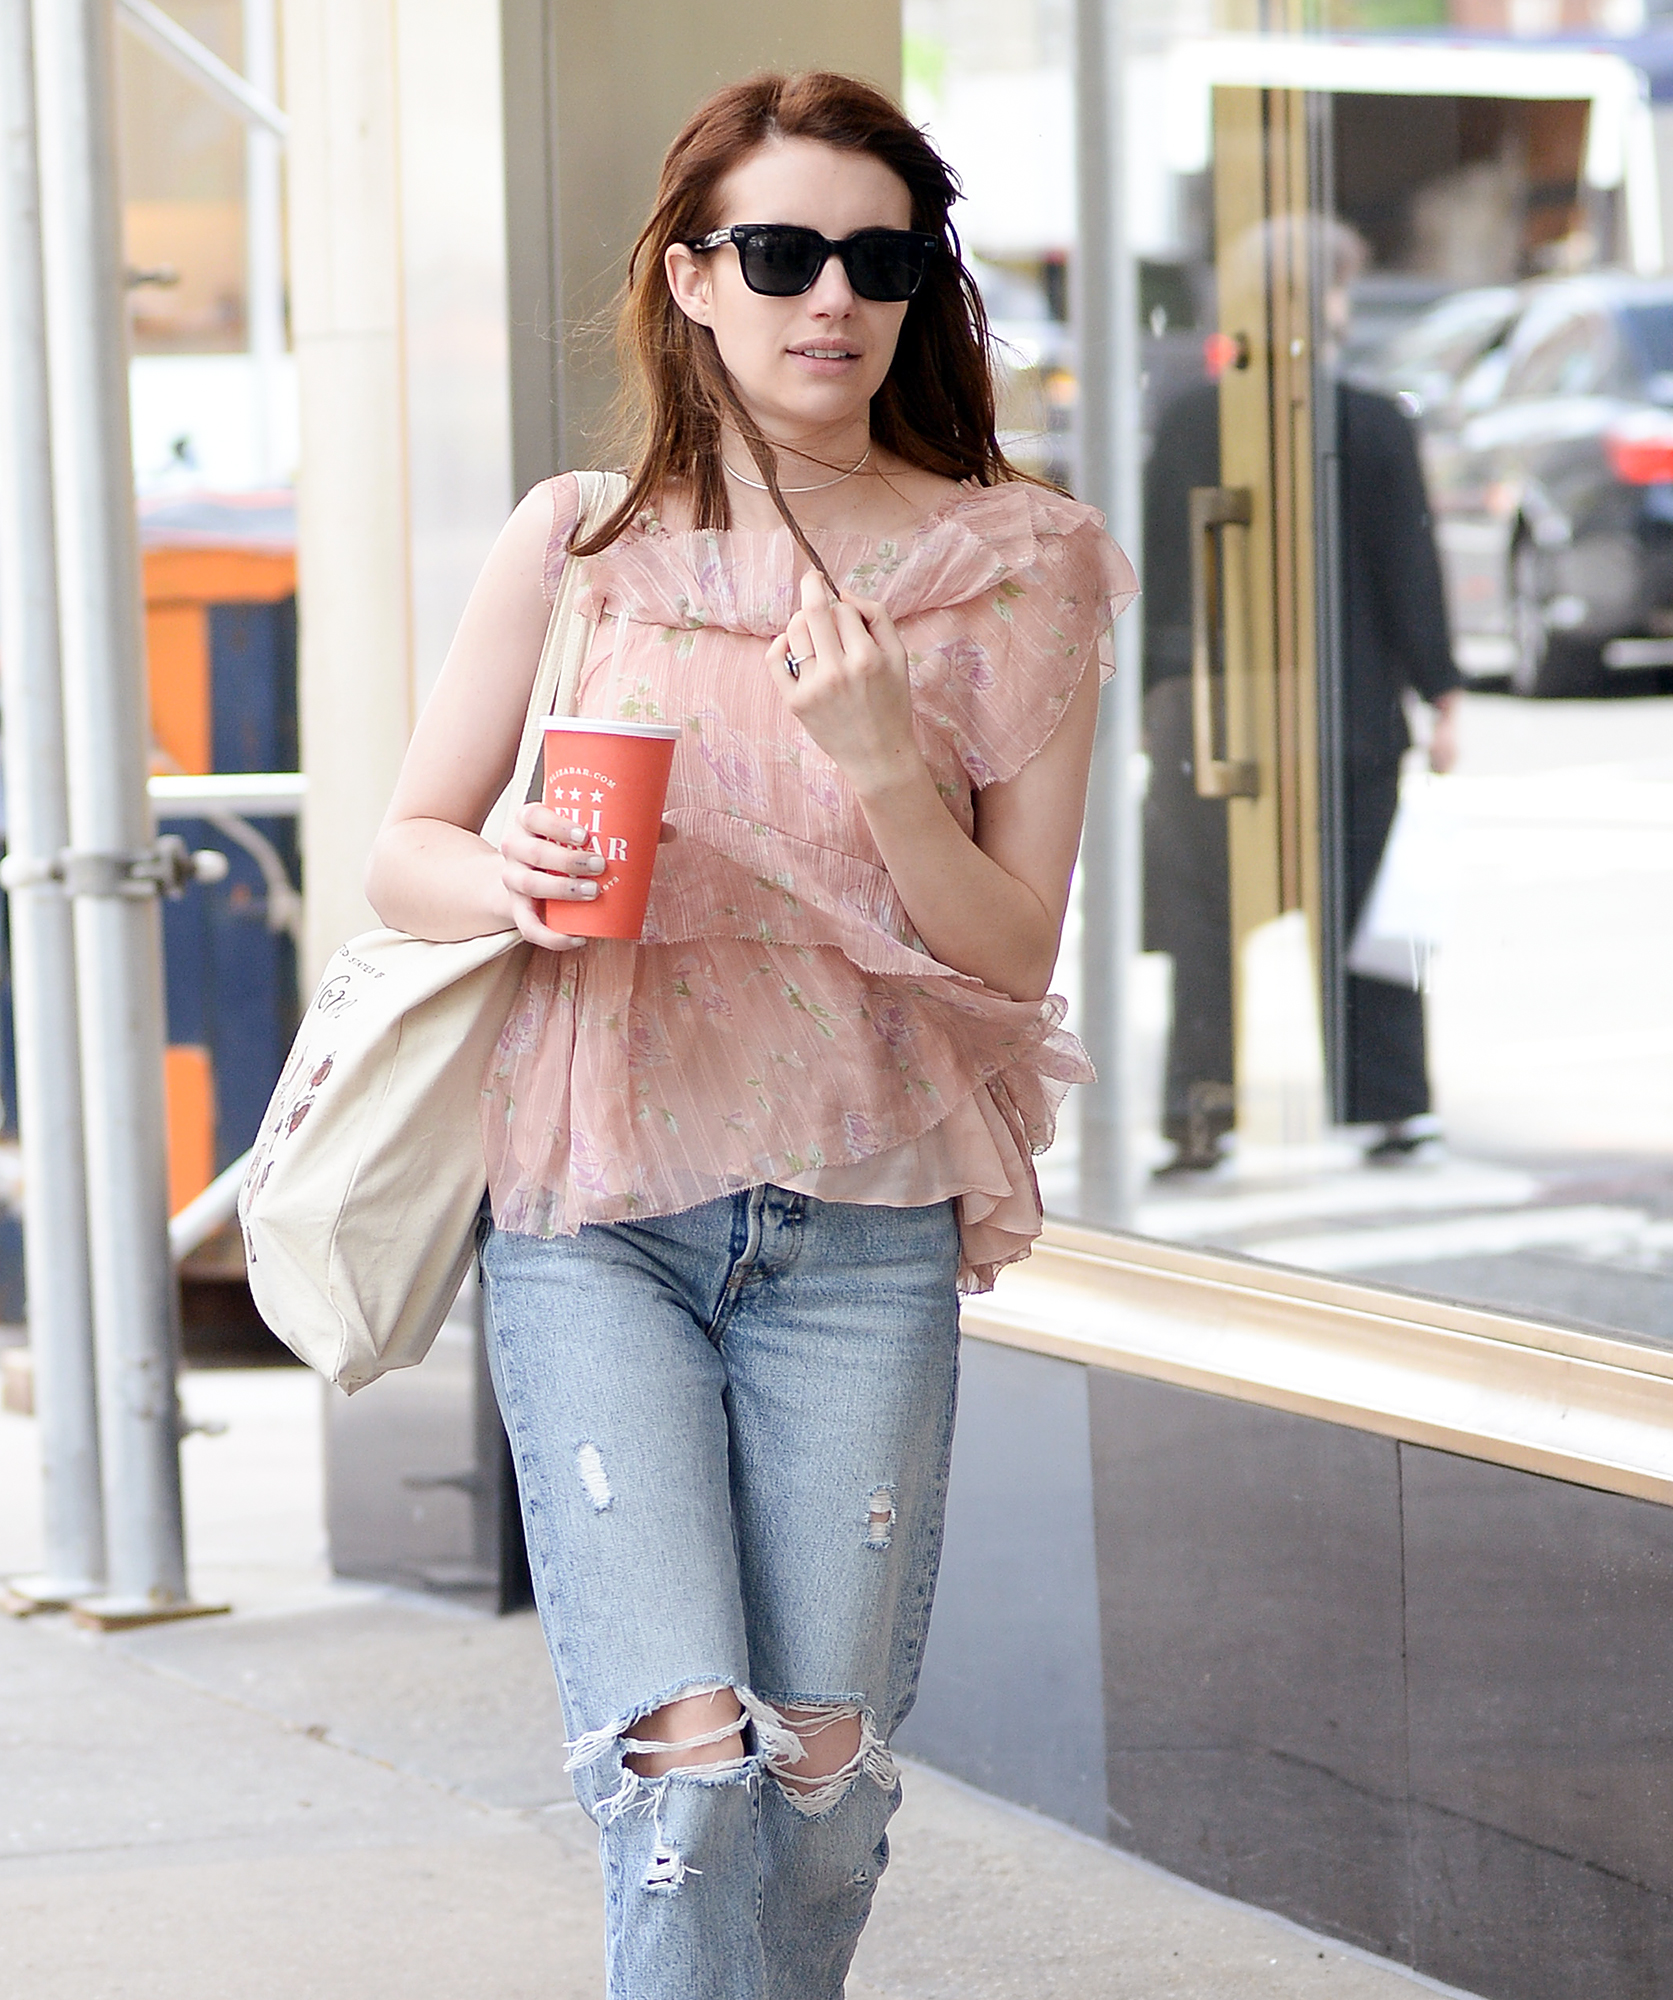 EXCLUSIVE: Emma Roberts Does Some Shopping today